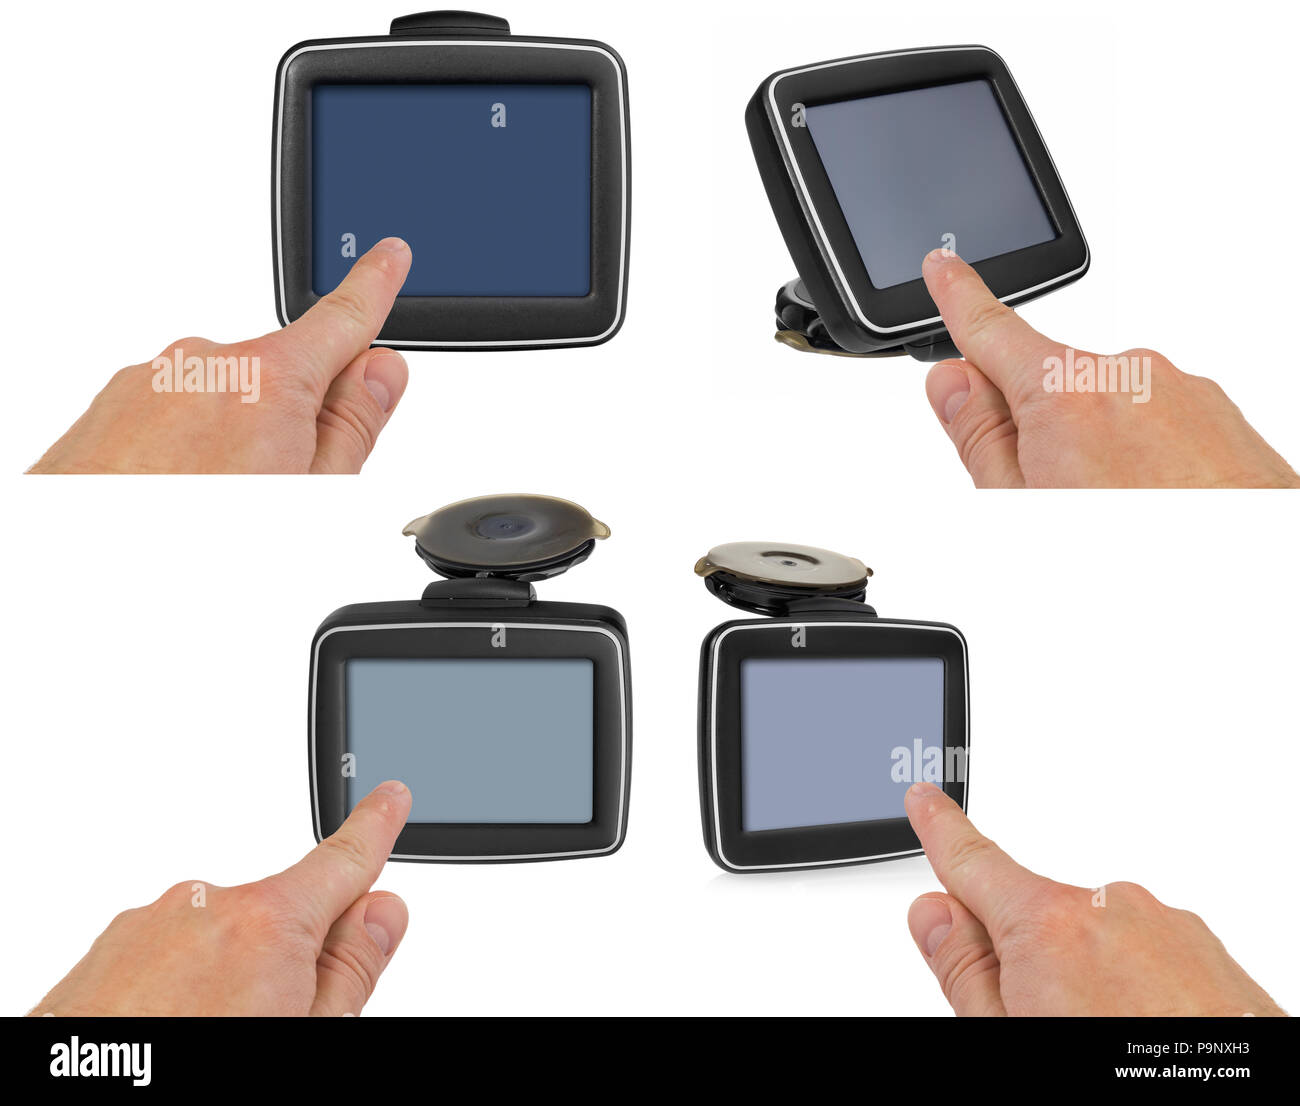 GPS car navigation with handle. The finger indicates the point on the satellite navigation screen. Black electronic map device with blue screen and si - Stock Image